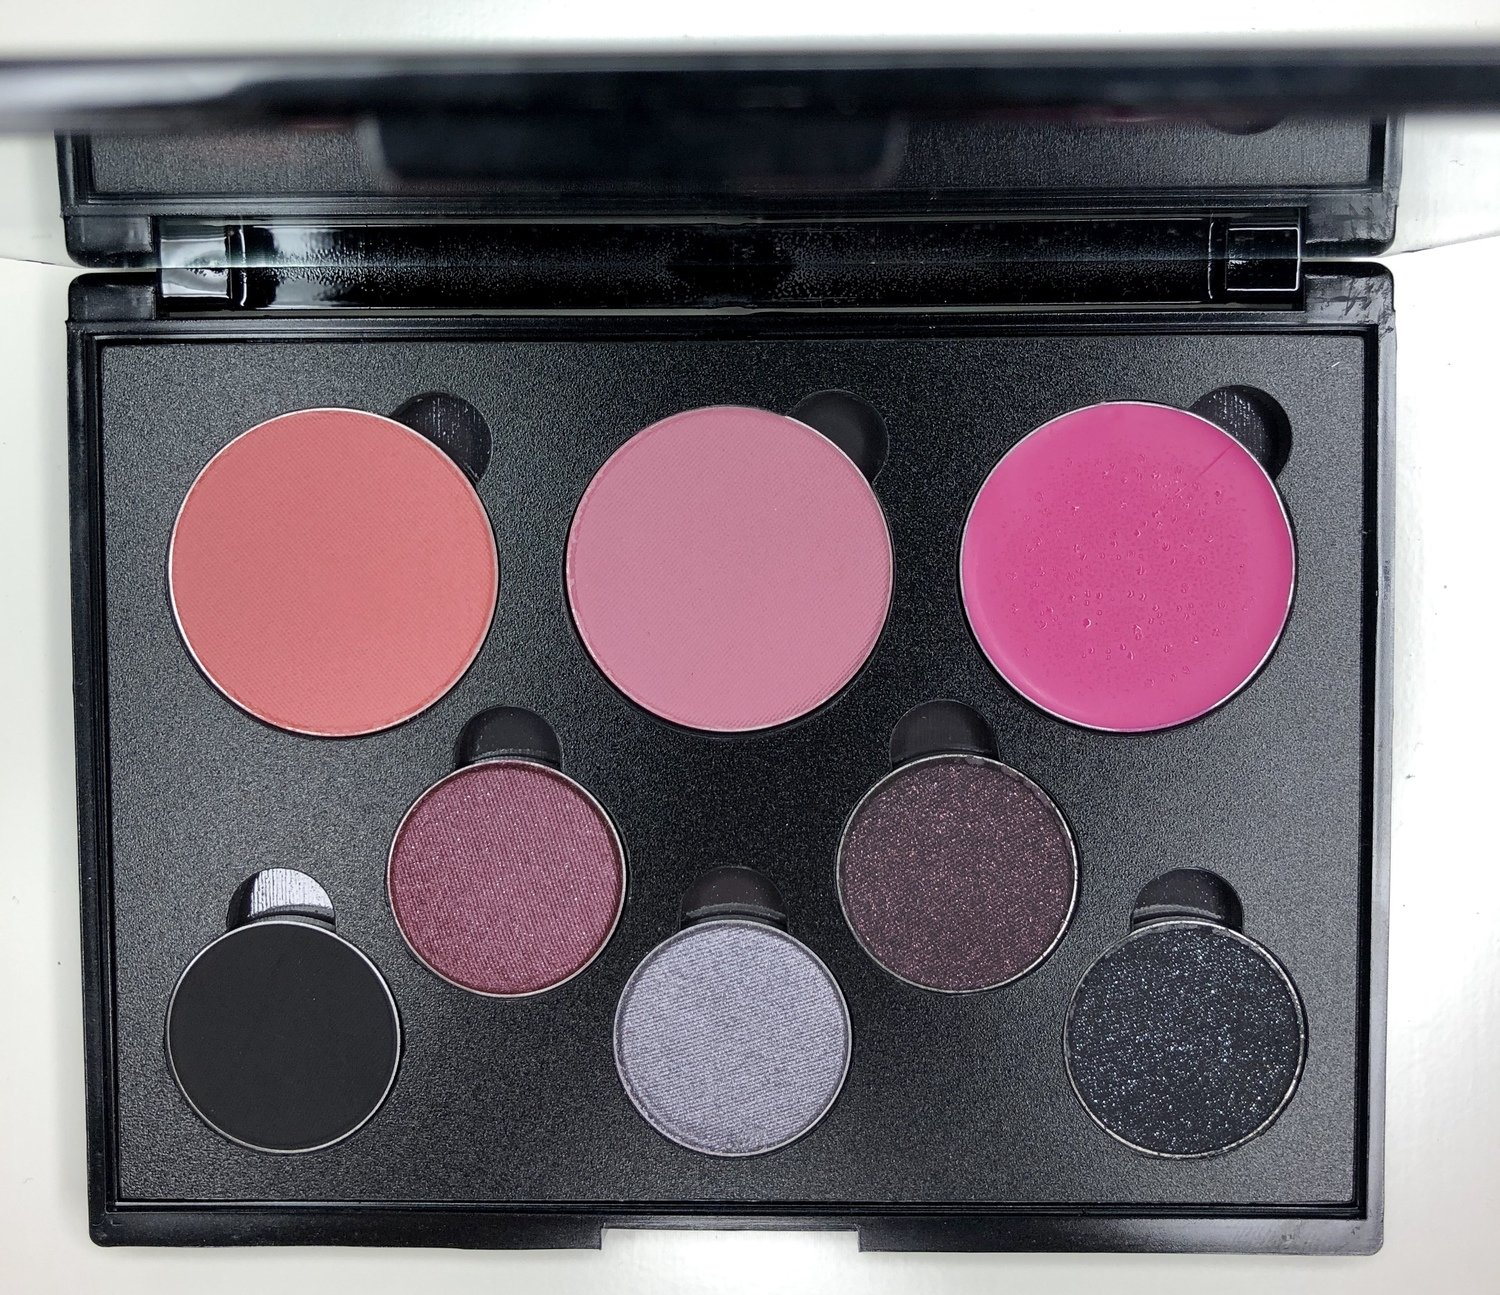 Blush, Cream Blush & eye shadow pallet .